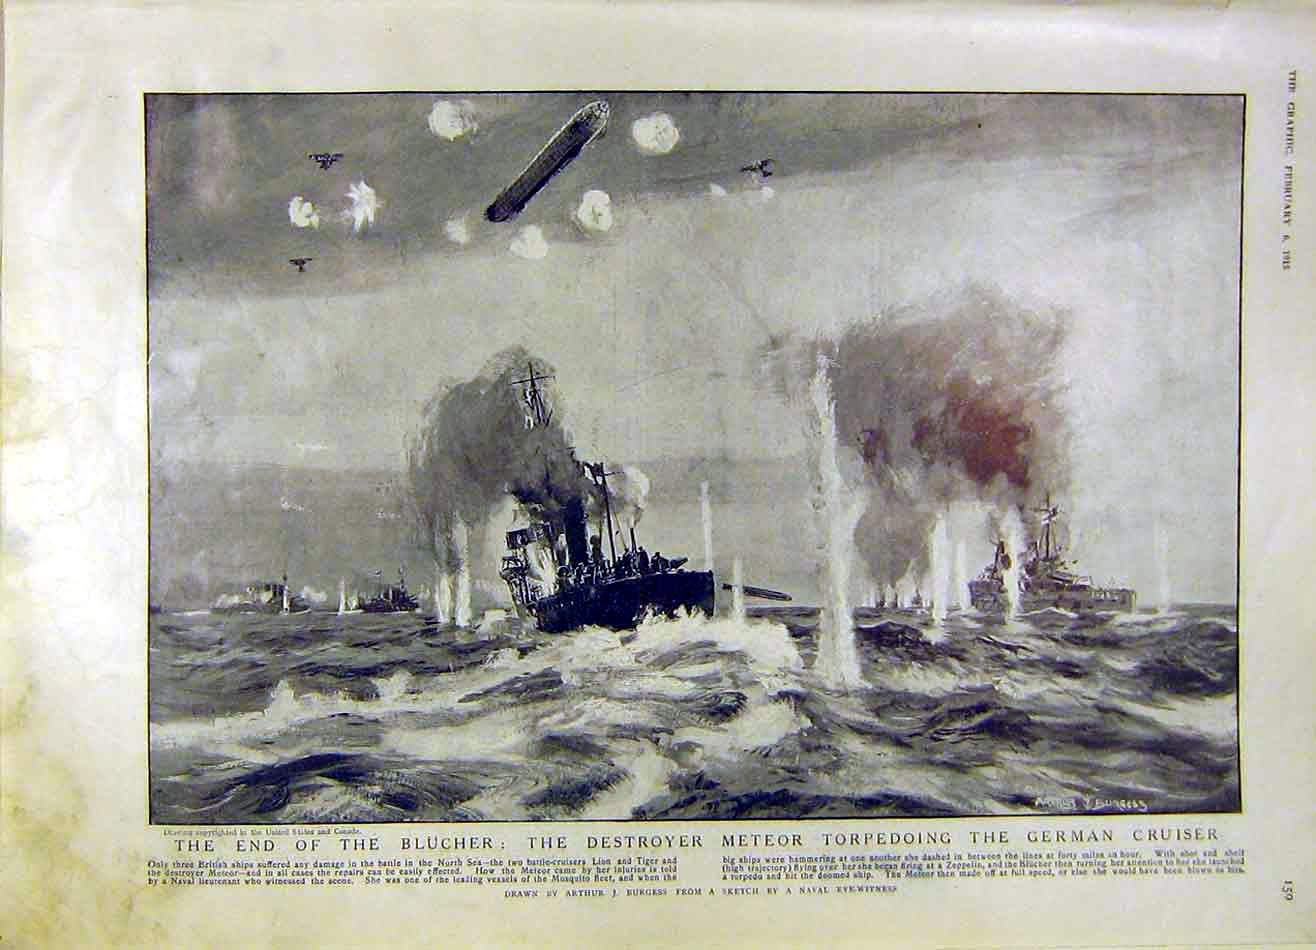 Print Blucher Destroyer Torpedo German Cruiser Ww1 War 1915 59Ddd0 Old Original